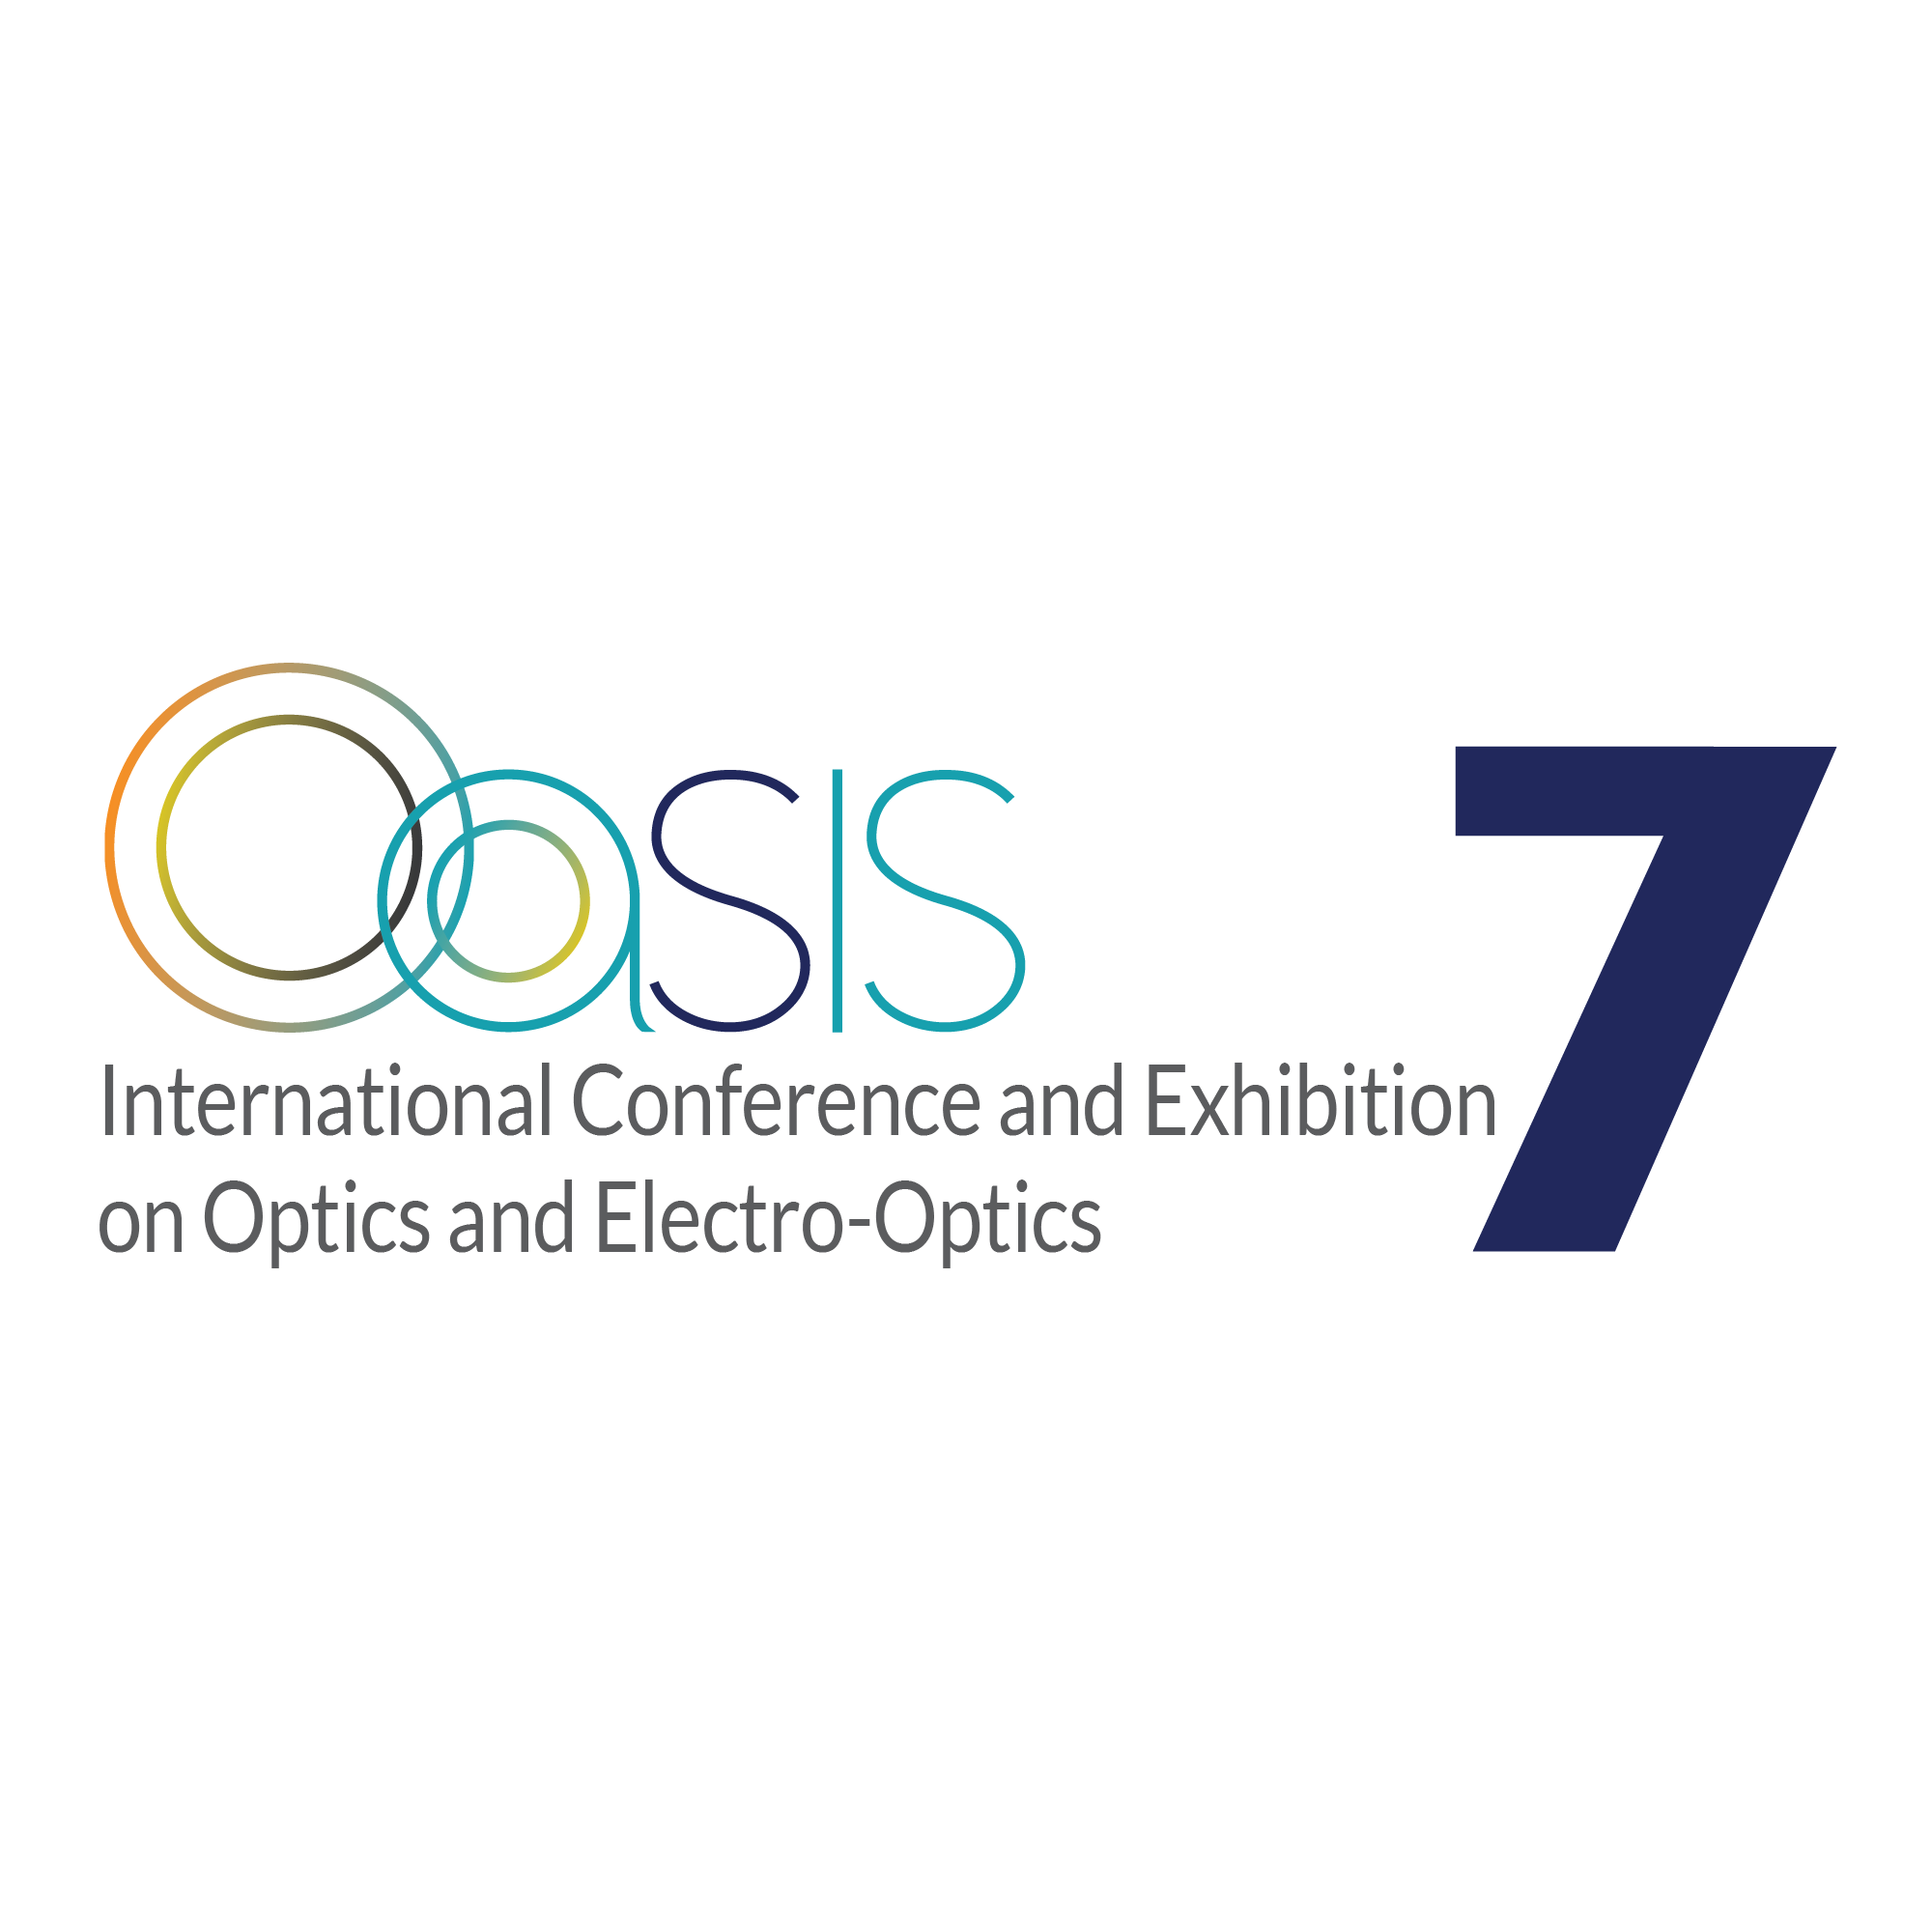 OASIS7 - INAM will be present at this year's OASIS meeting where the latest advances in the field of electro-optics worldwide will be presented.